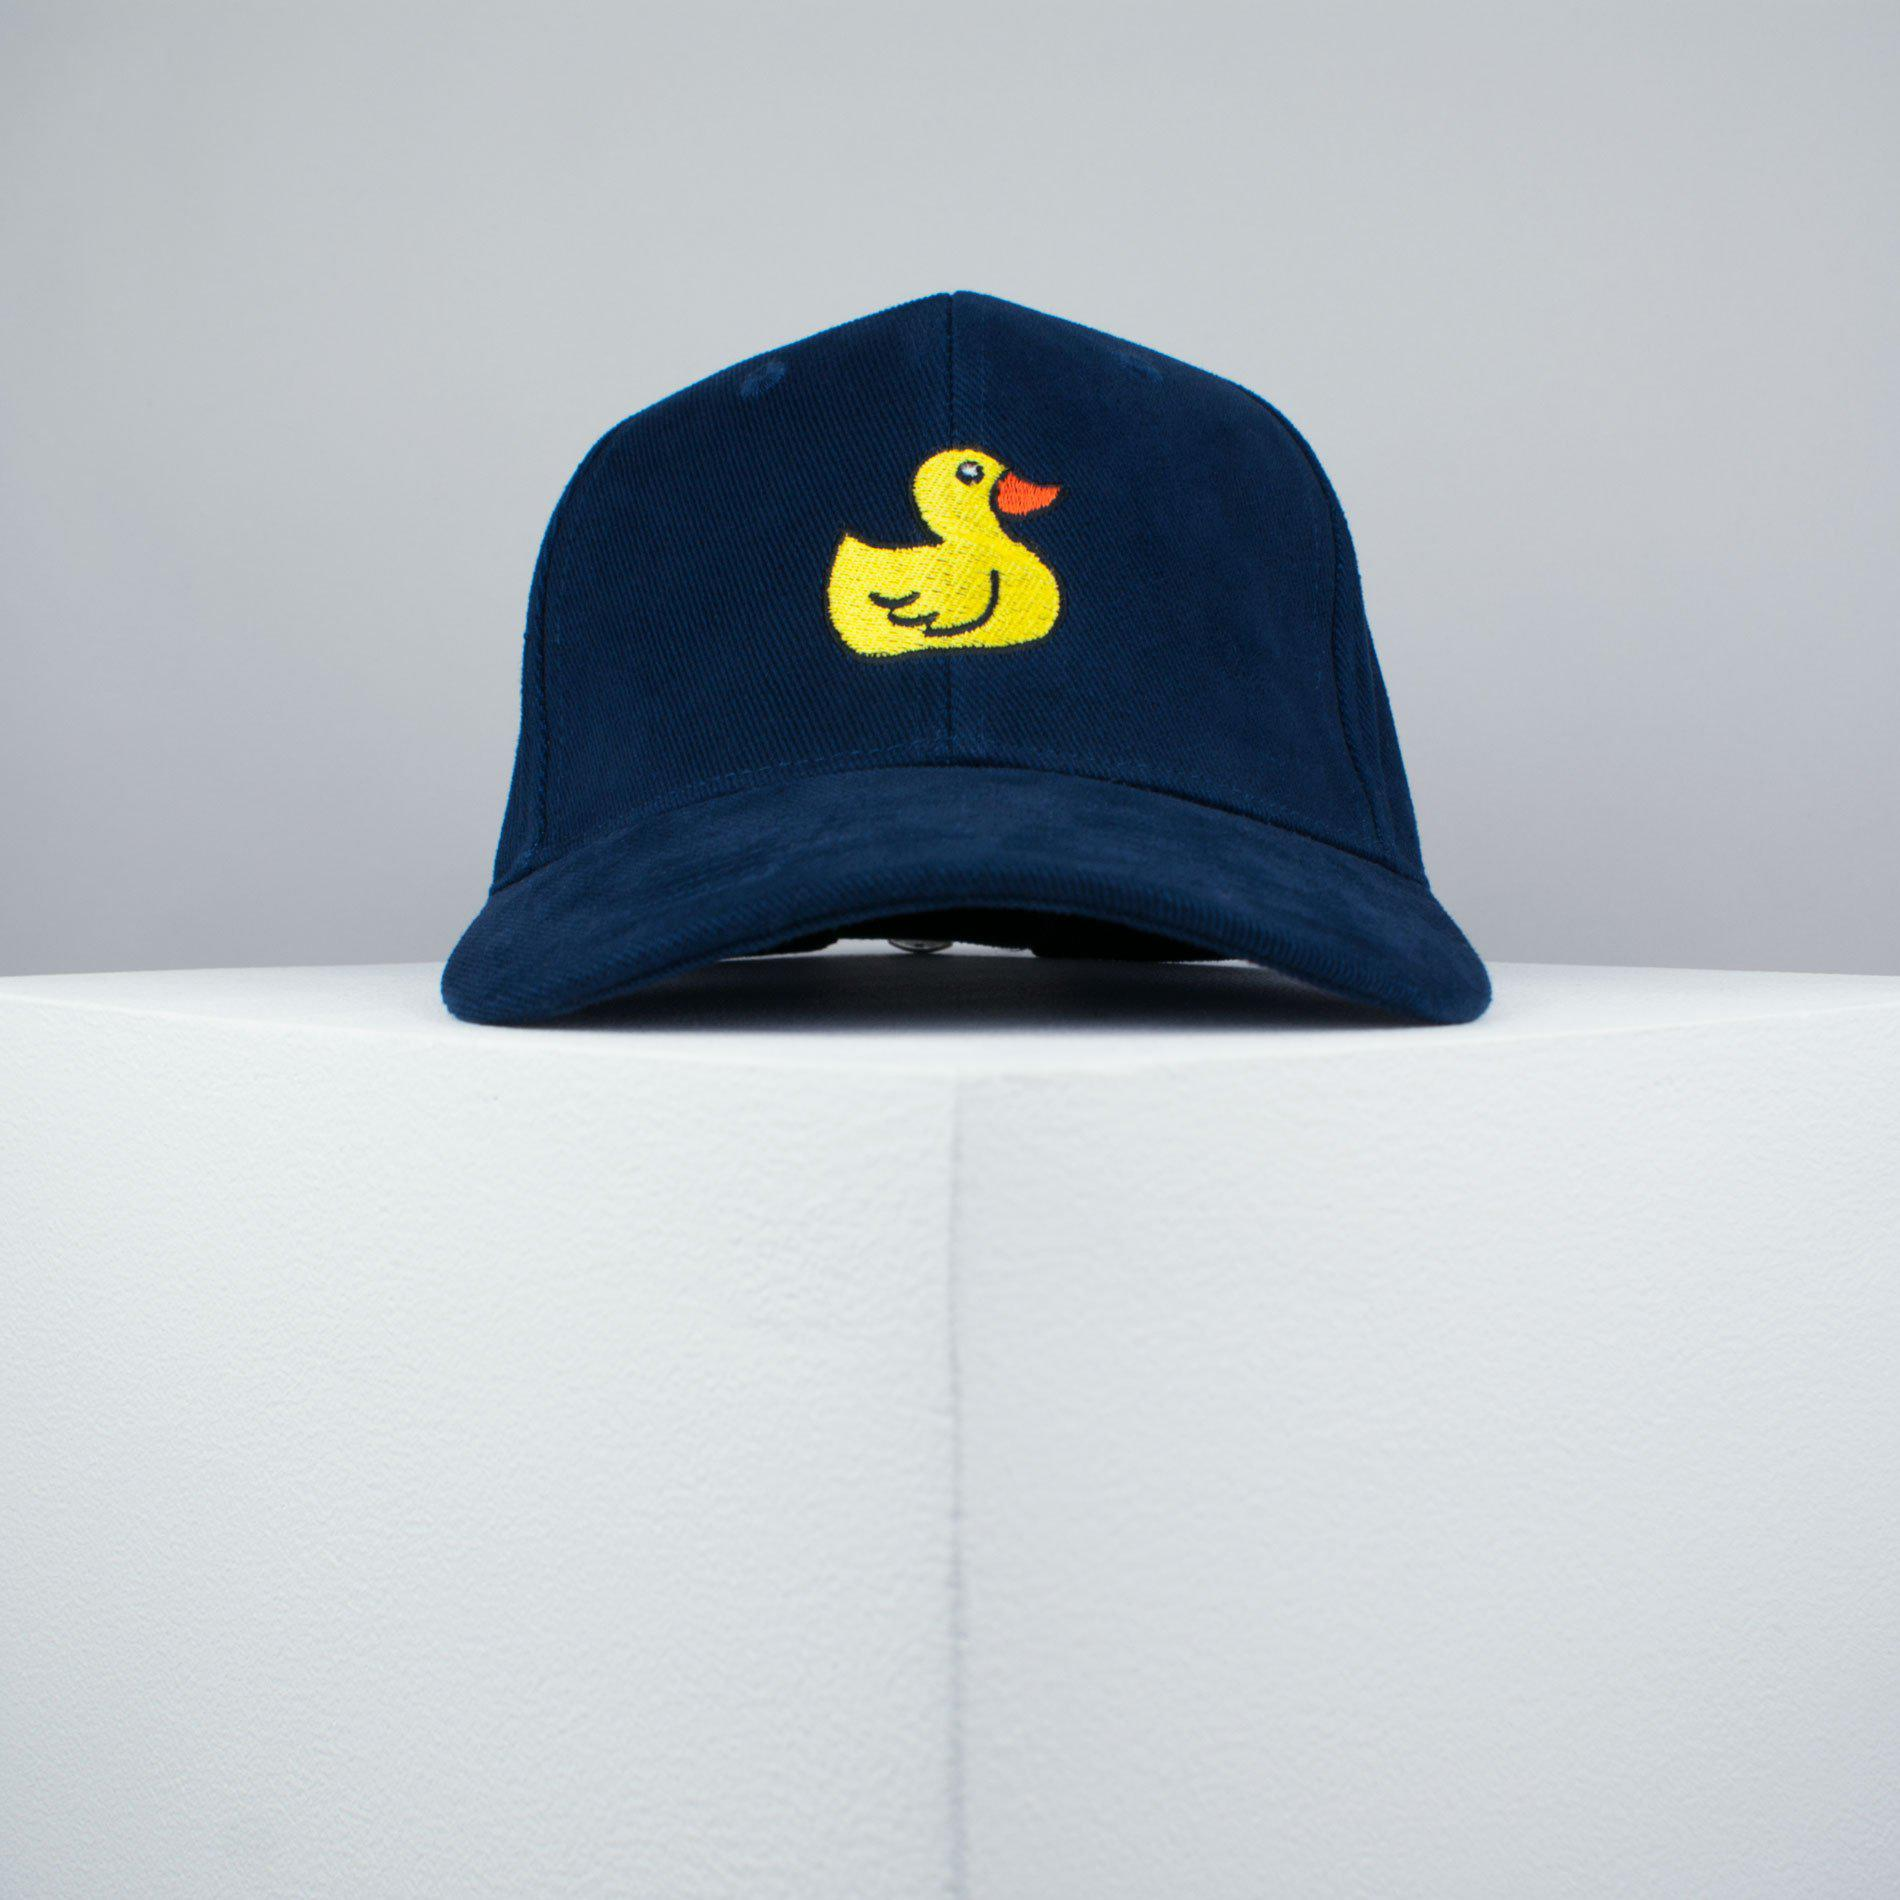 ... Rubber duck embroidered baseball cap navy   animal   patches   duck    embroidery   patch ... ec3aa411027